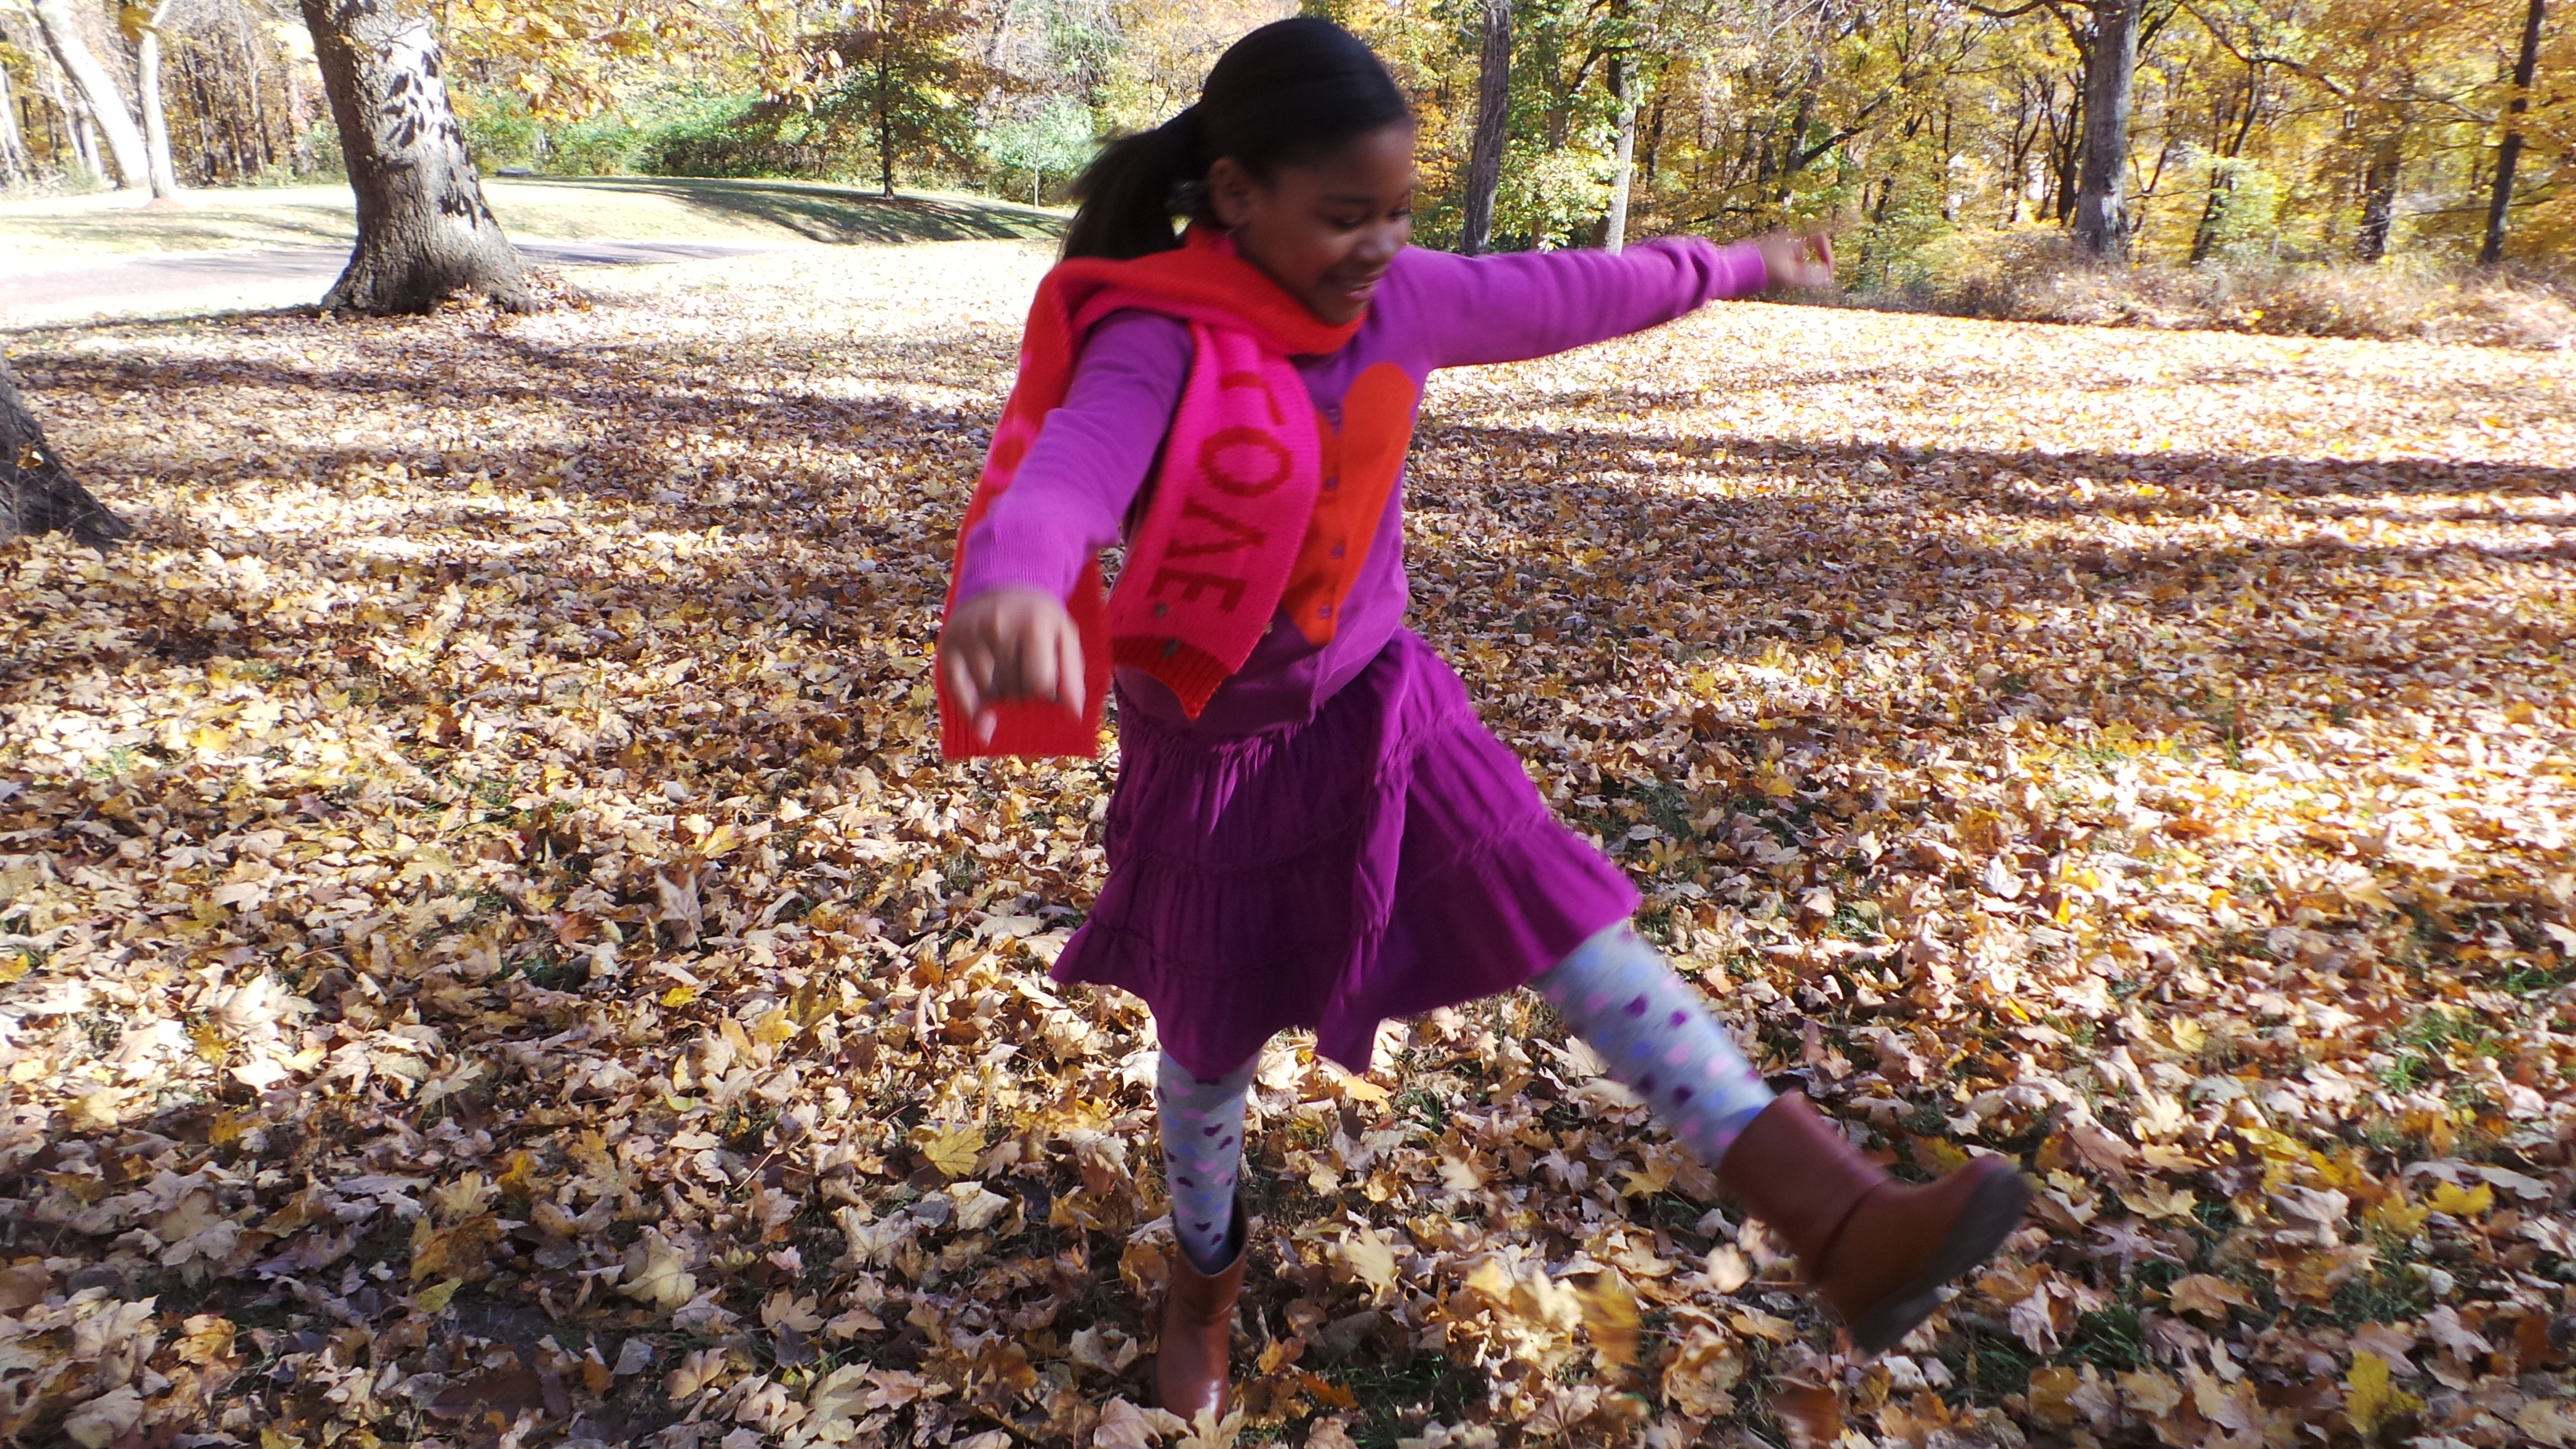 #BanBossy: My Take On the Movement As A Mom of a Daughter